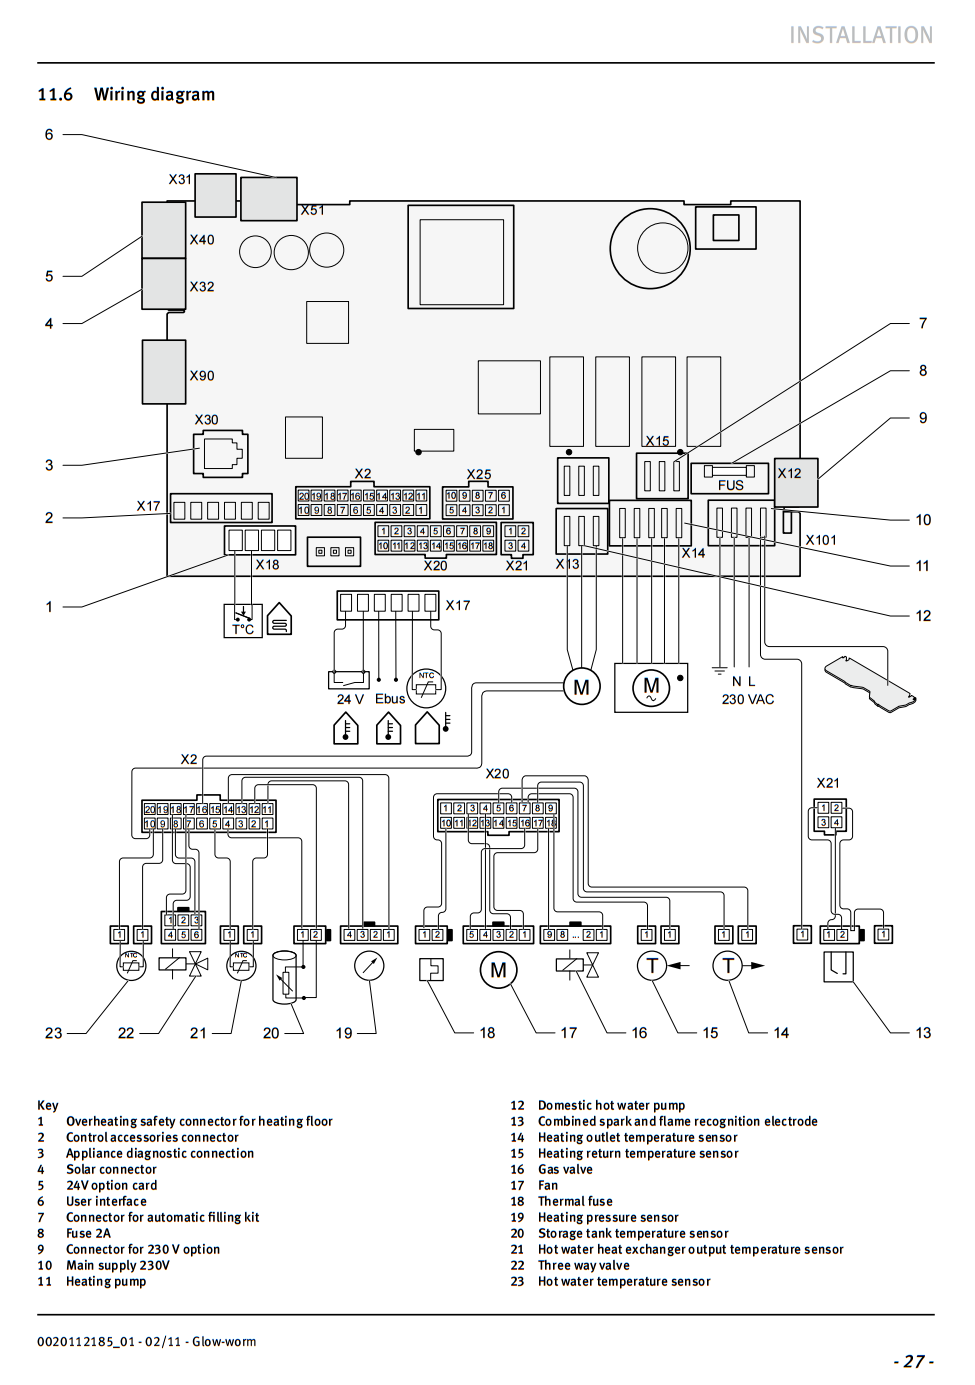 ask glow worm ultracom 2 store internal wiring diagram